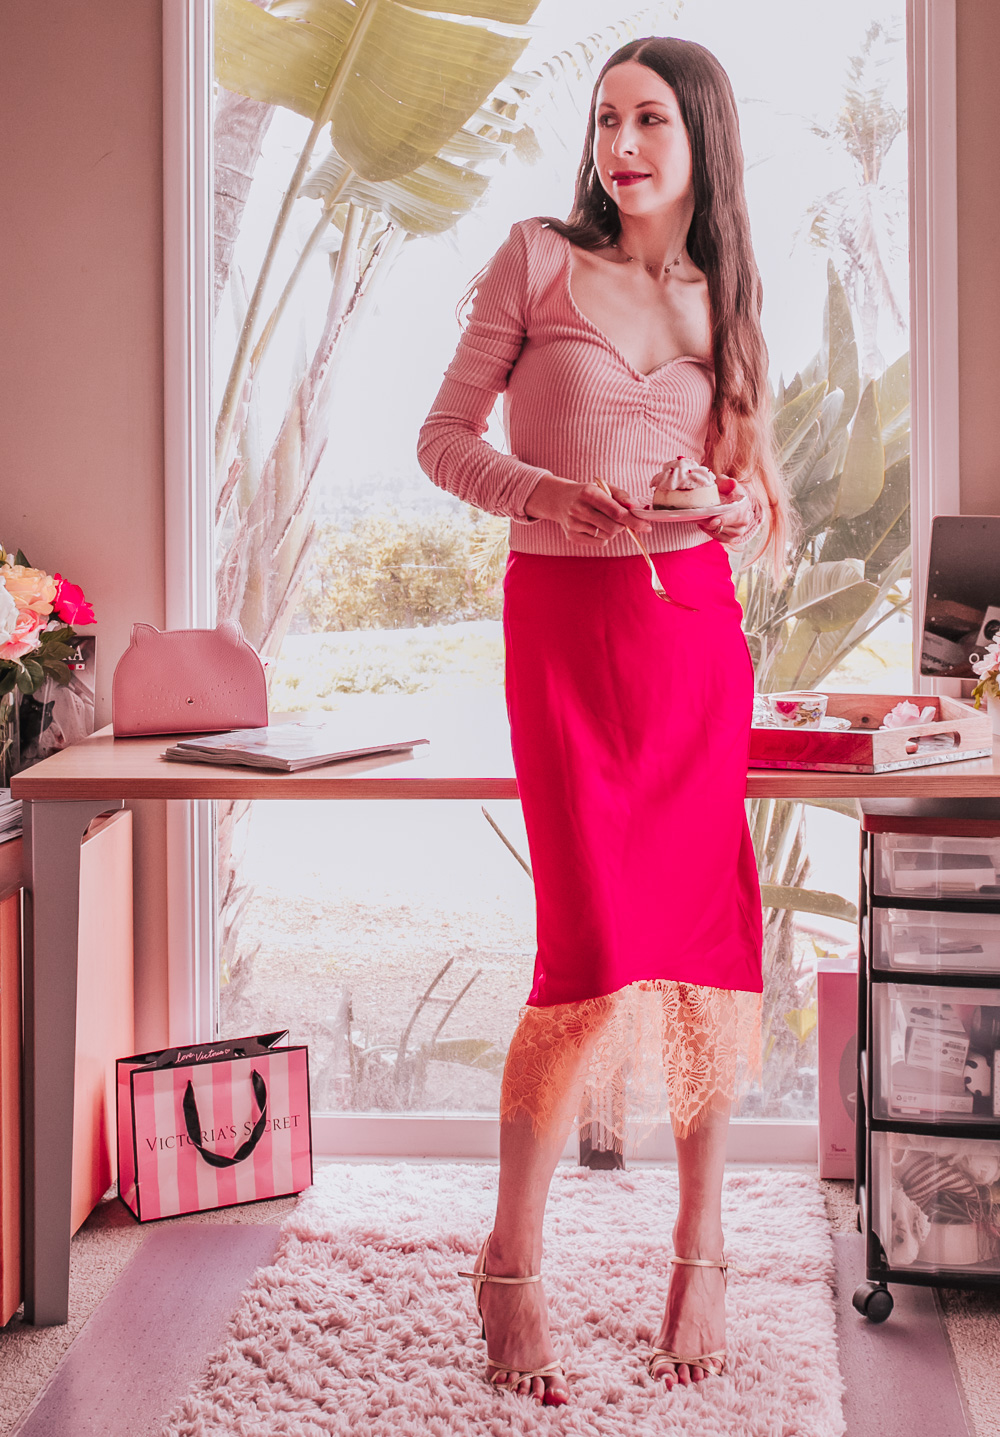 This Pink Top and Red Skirt Outfit is beautiful and casual at the same time!